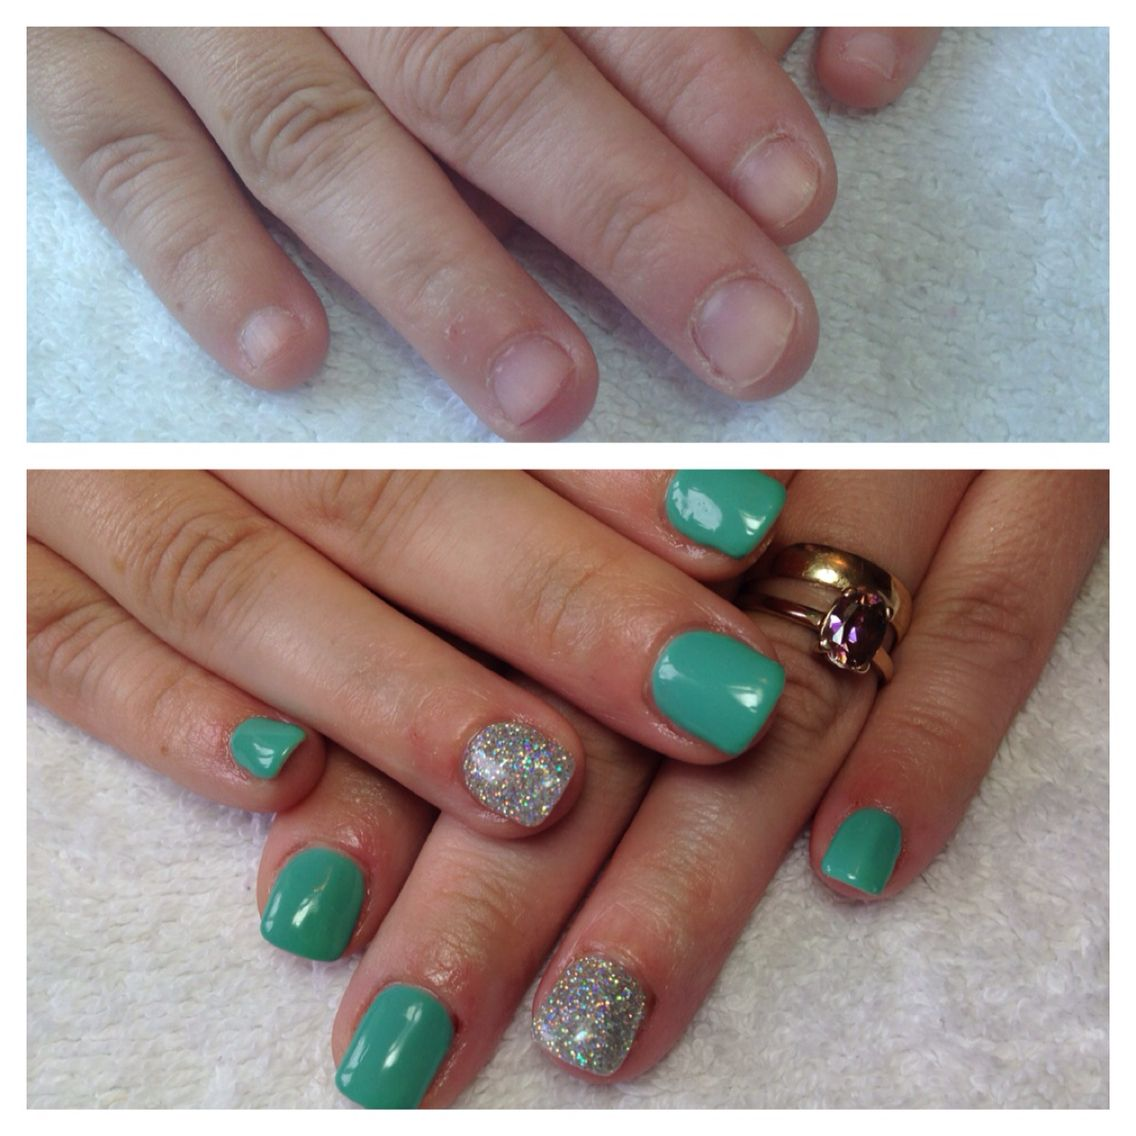 Cal Gel Nail: Nail Extensions With Calgel, Before And After